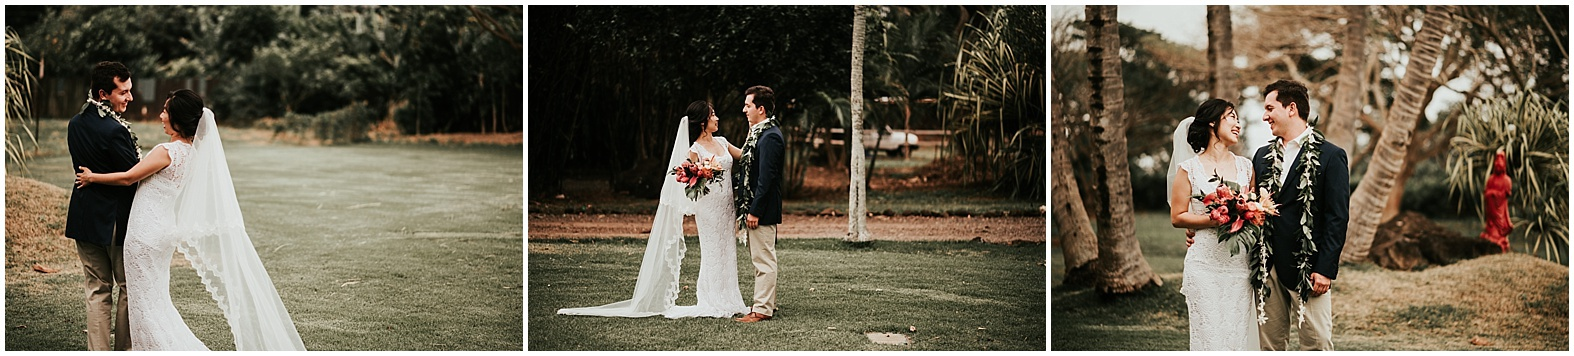 Oahu wedding photographer23